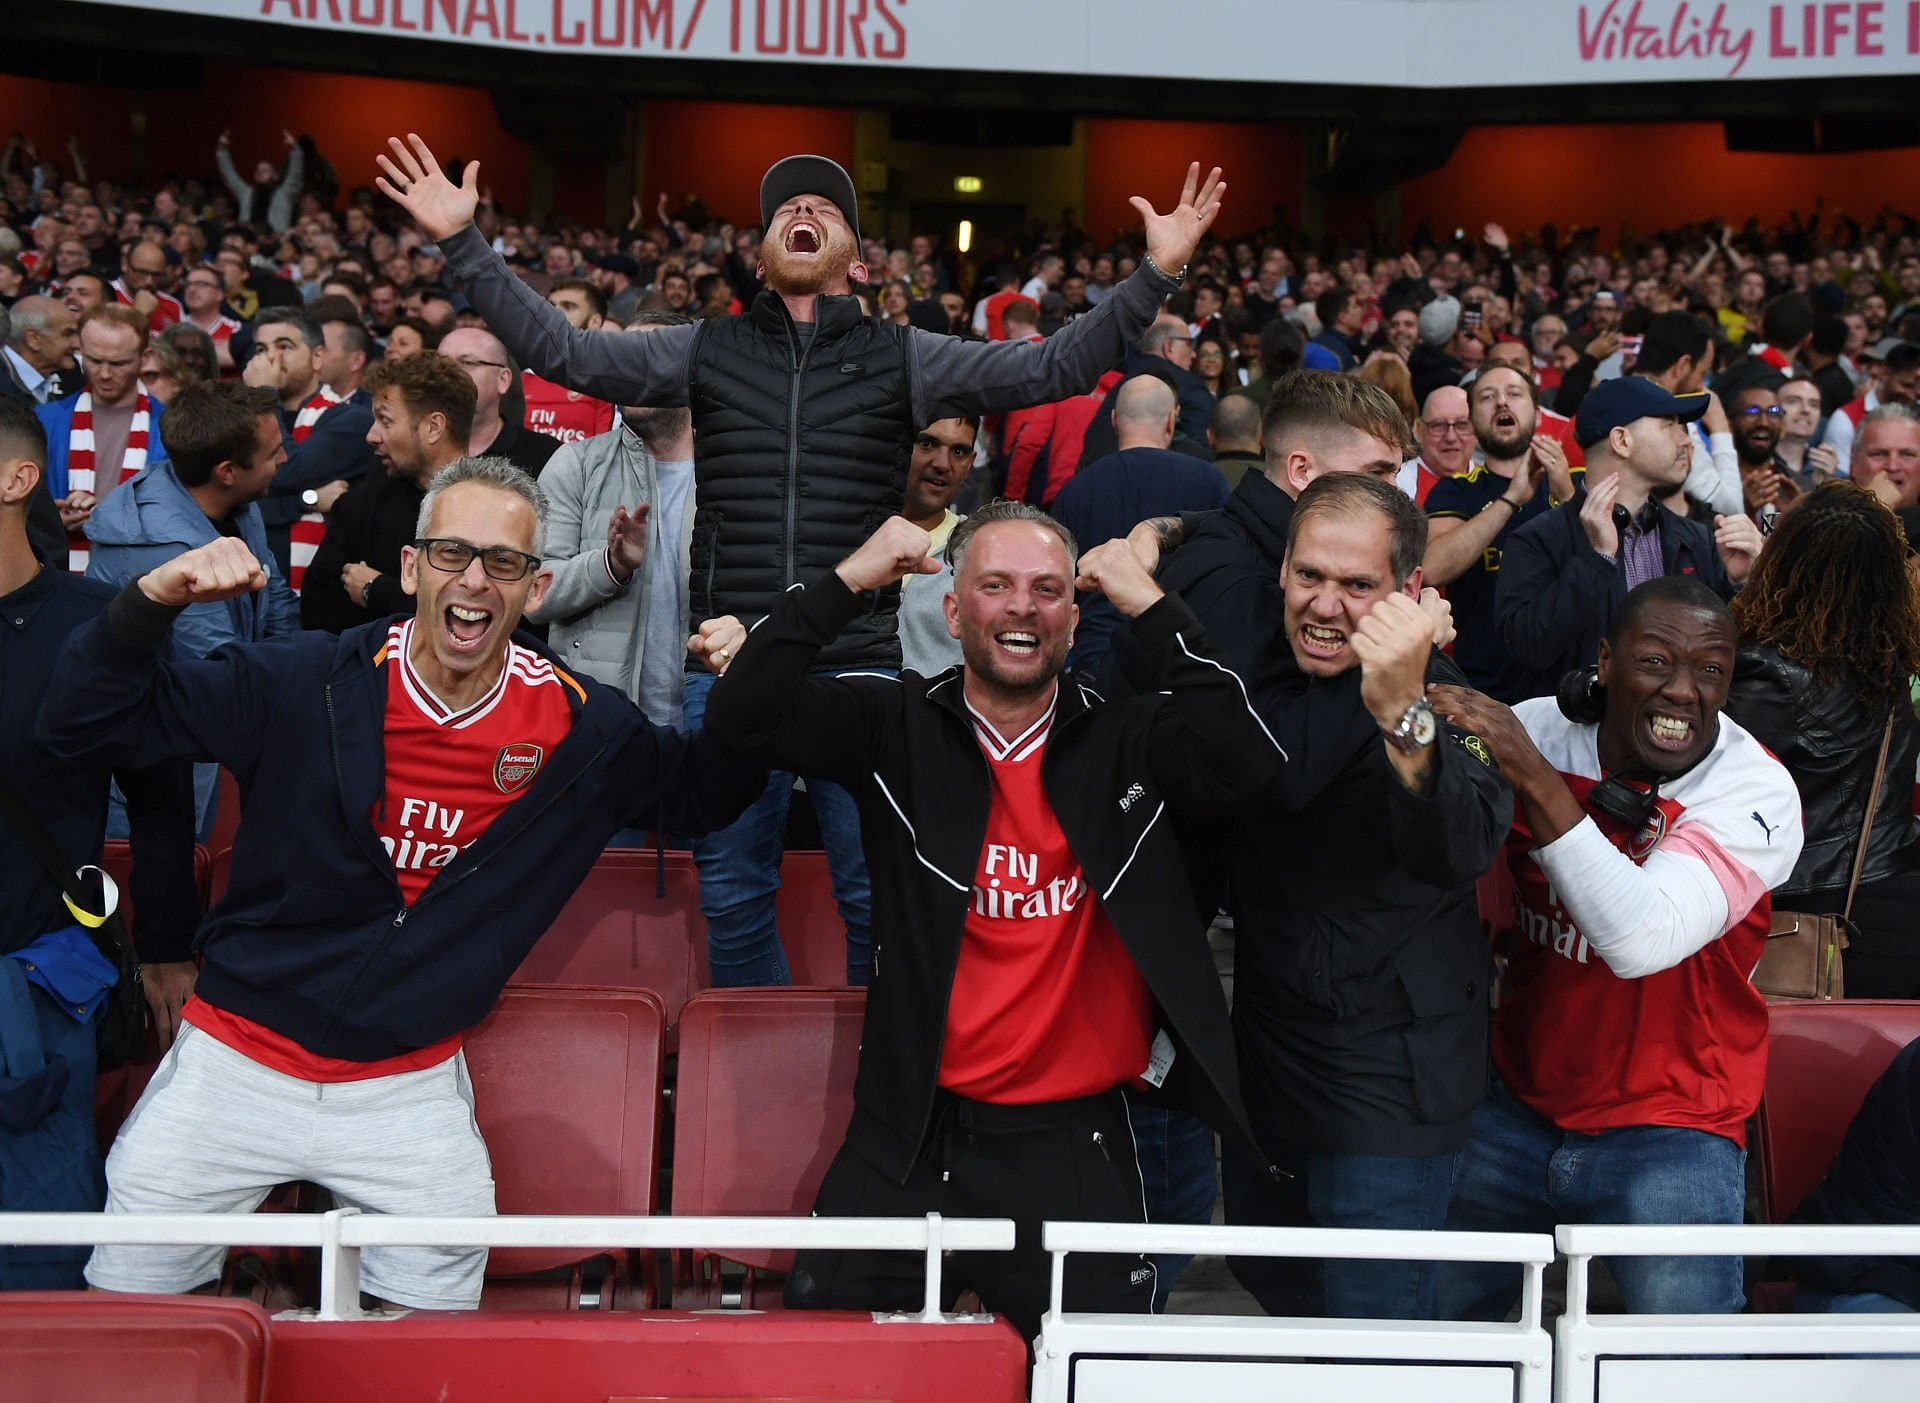 im-no-longer-kidding-some-arsenal-fans-reveal-or-no-longer-its-a-ways-time-for-puny-one-to-birth-after-liverpool-defeat.jpg